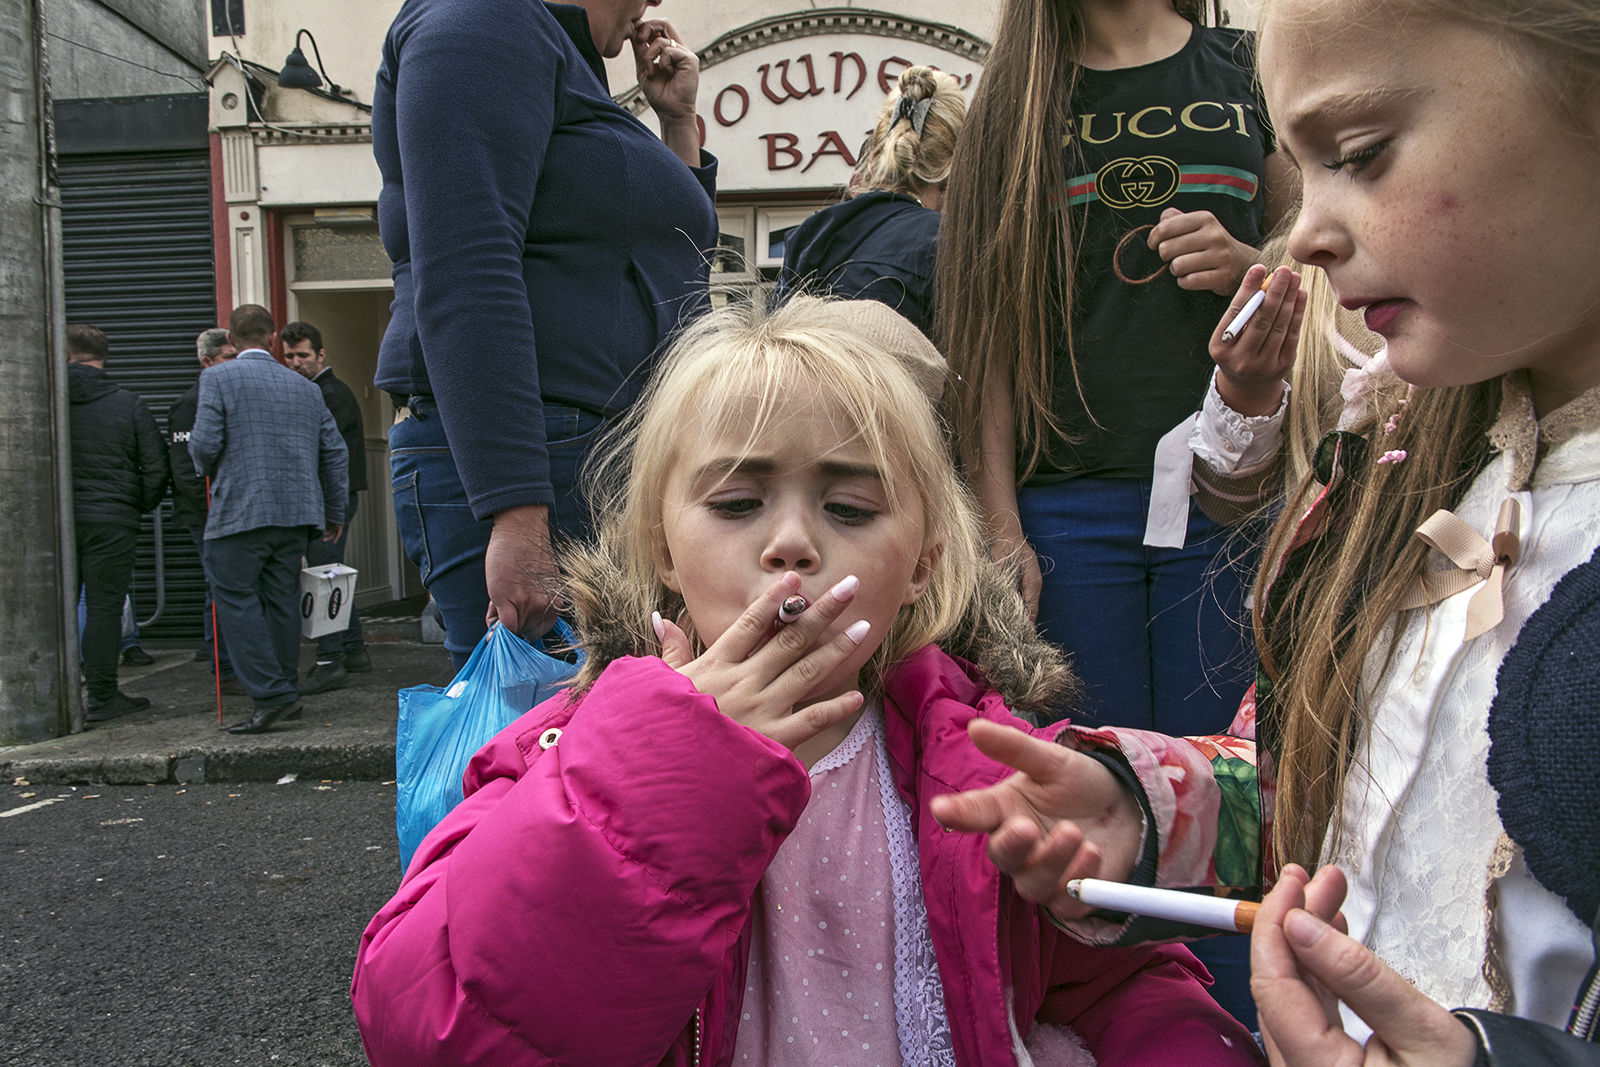 Toy Cigarettes, Galway, Ireland 2019